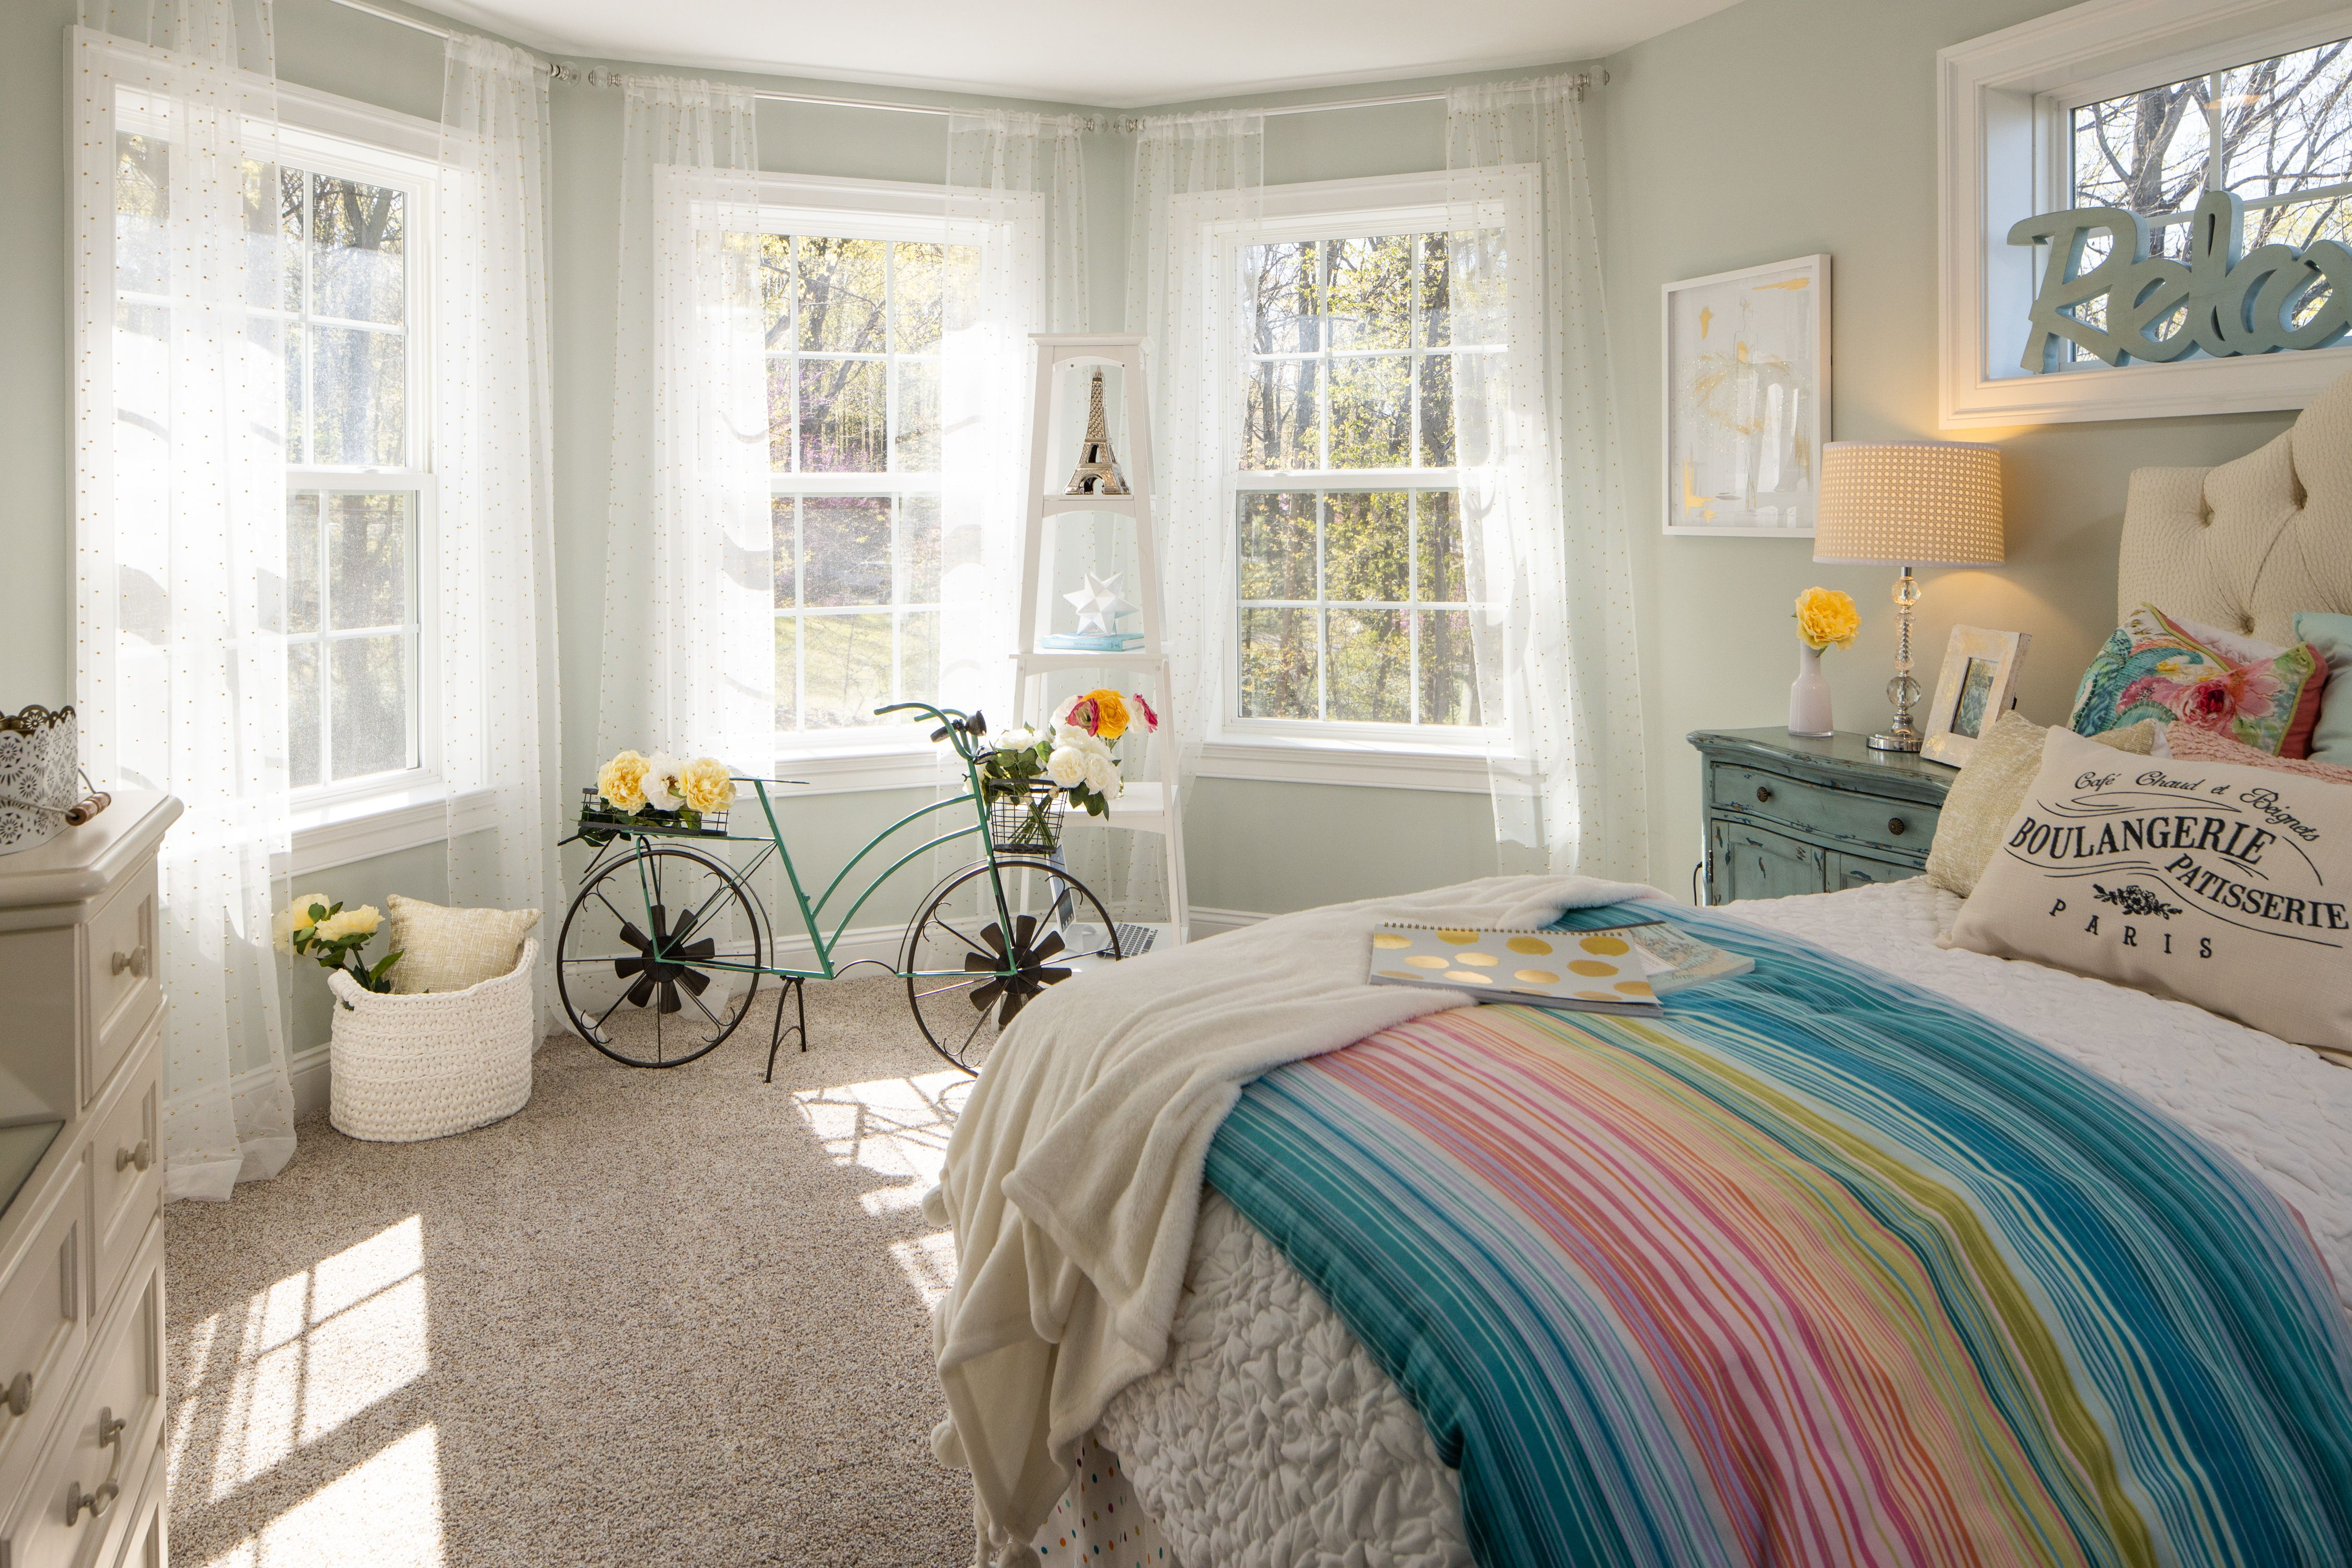 Bedroom featured in the Nottingham Farmhouse By Keystone Custom Homes in Baltimore, MD